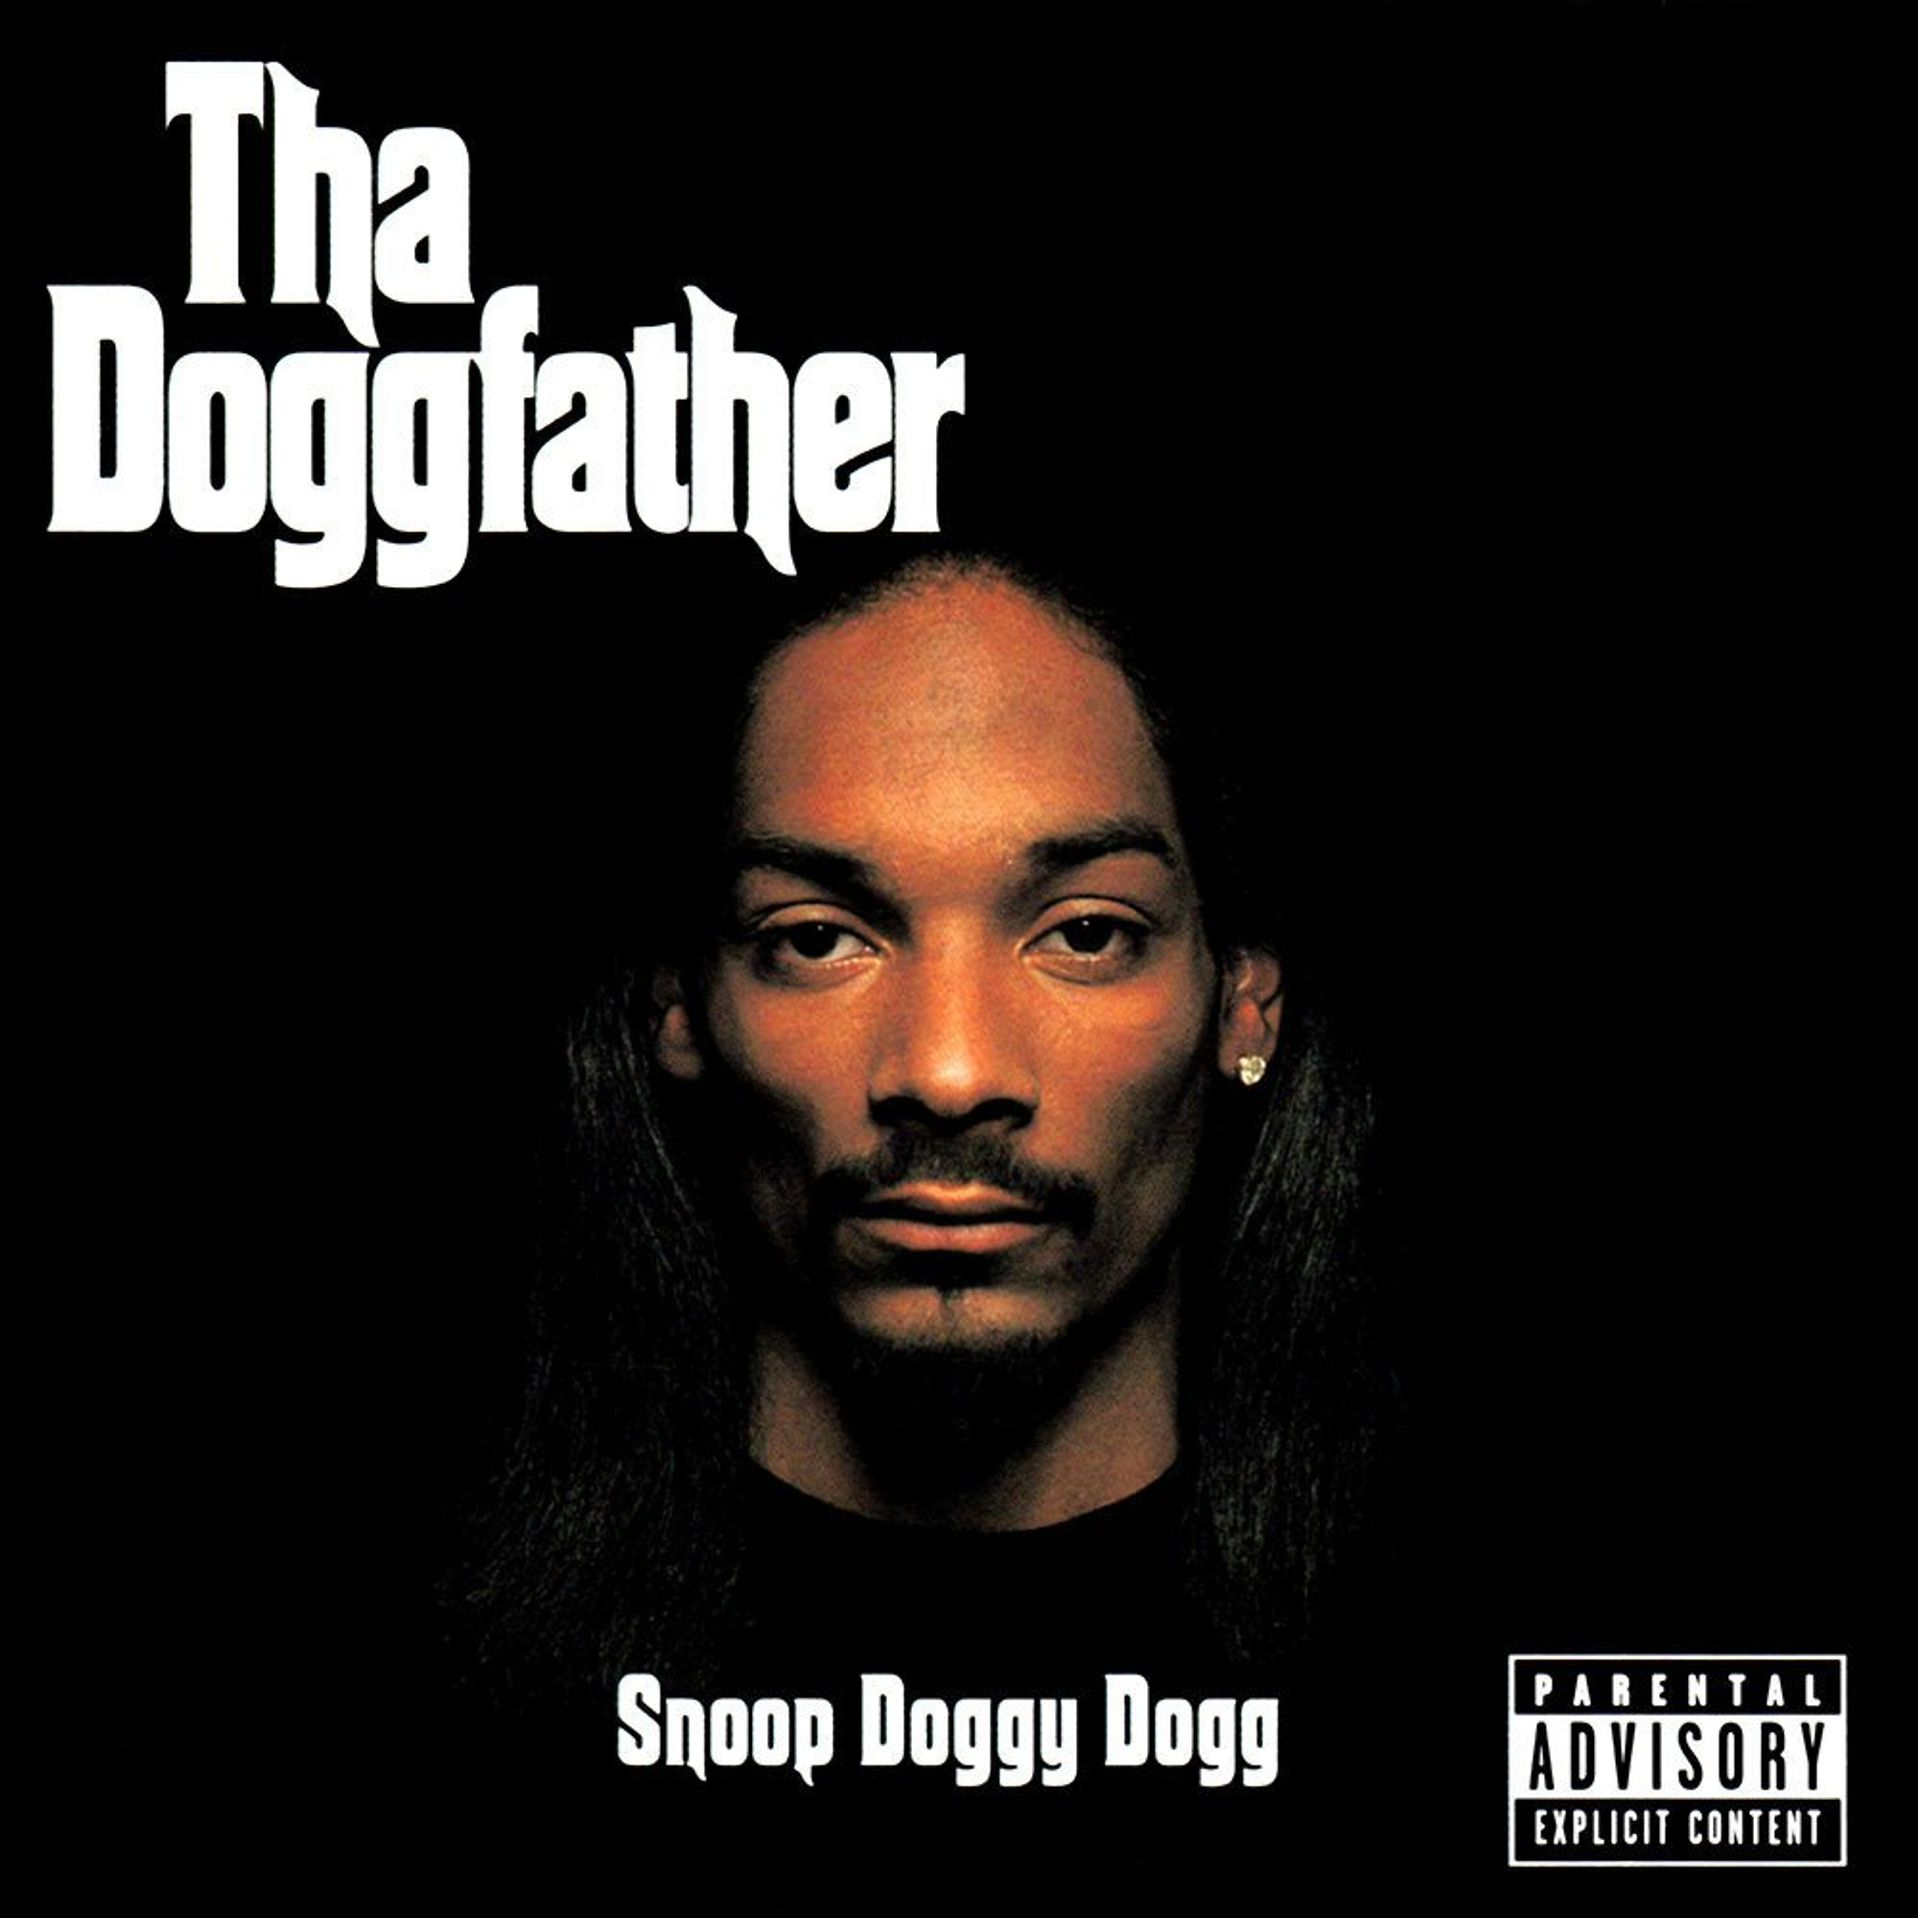 Album Title: Tha Doggfather by: Snoop Dogg